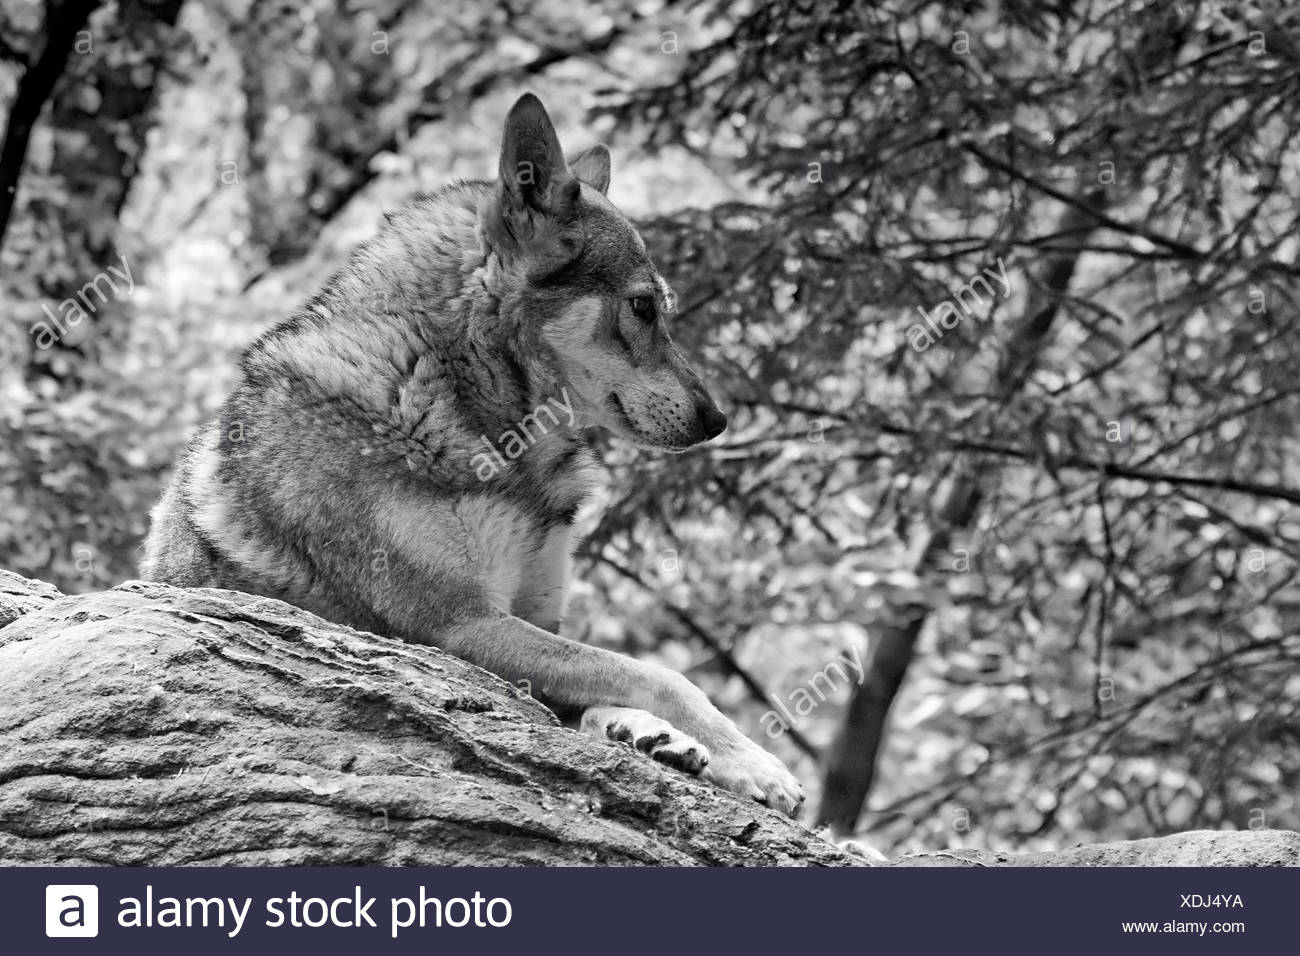 Czechoslovakian Wolfdog, A dog portrait in black and white, - Stock Image